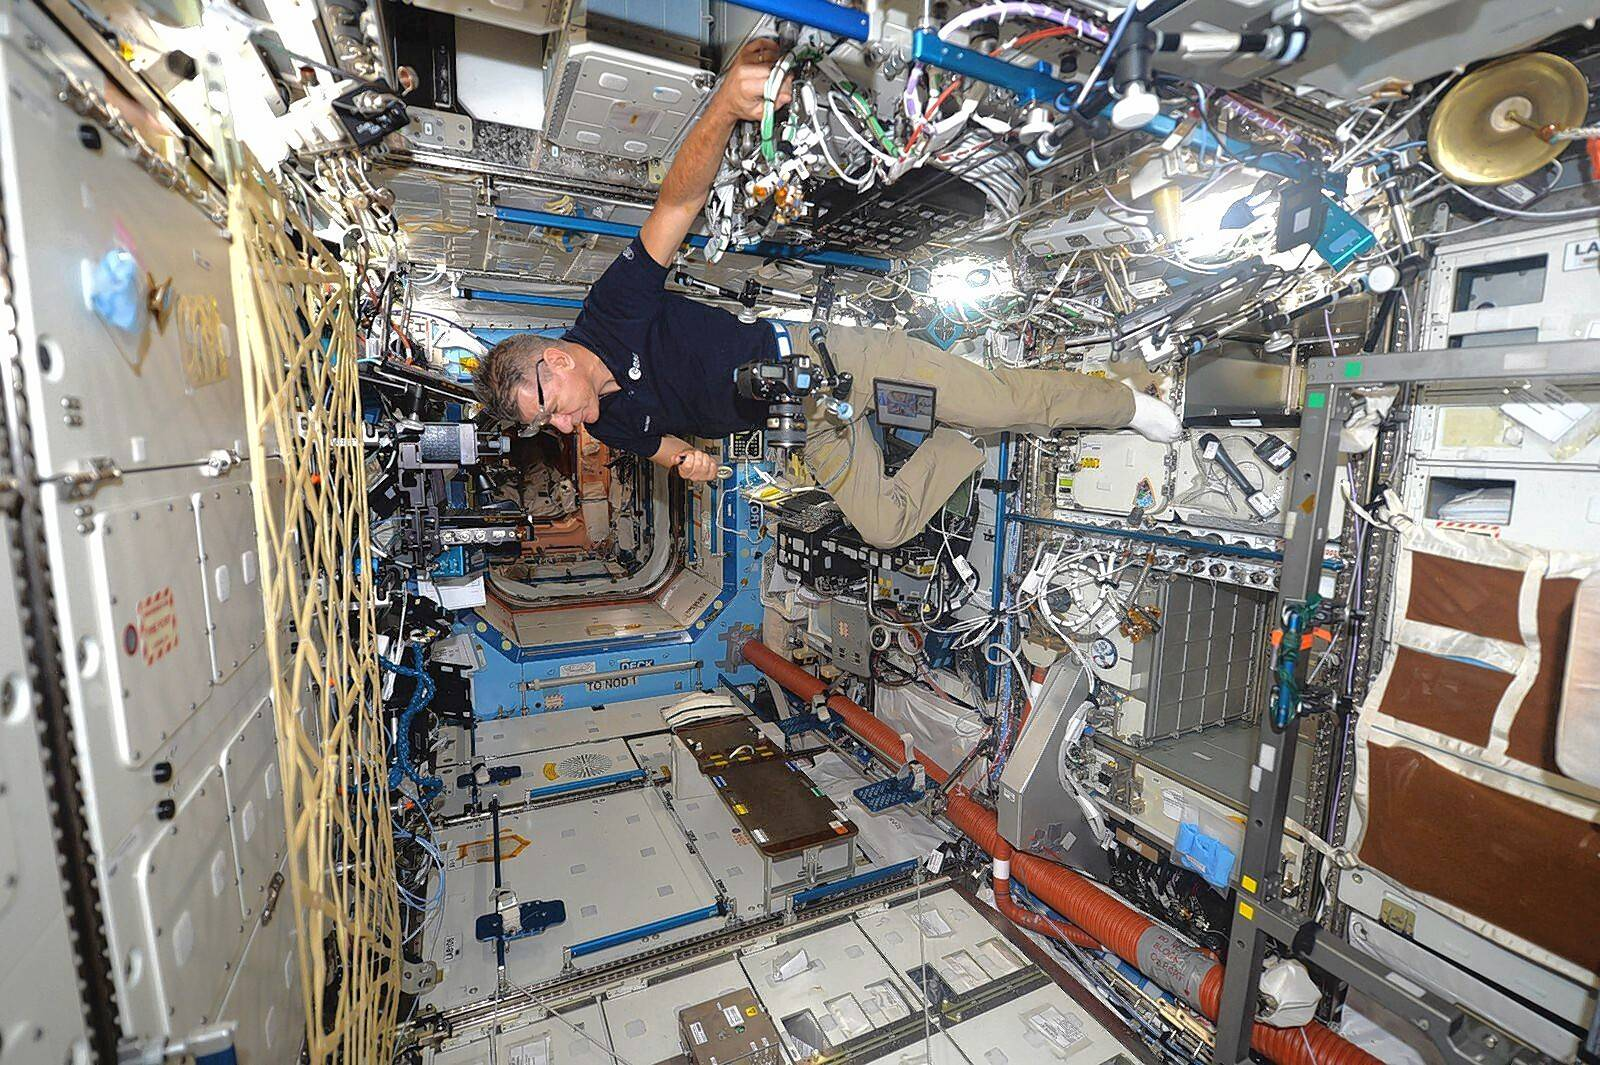 Italian astronaut Paolo Nespoli hovers photos during the shooting in zero gravity on board the International Space Station last year